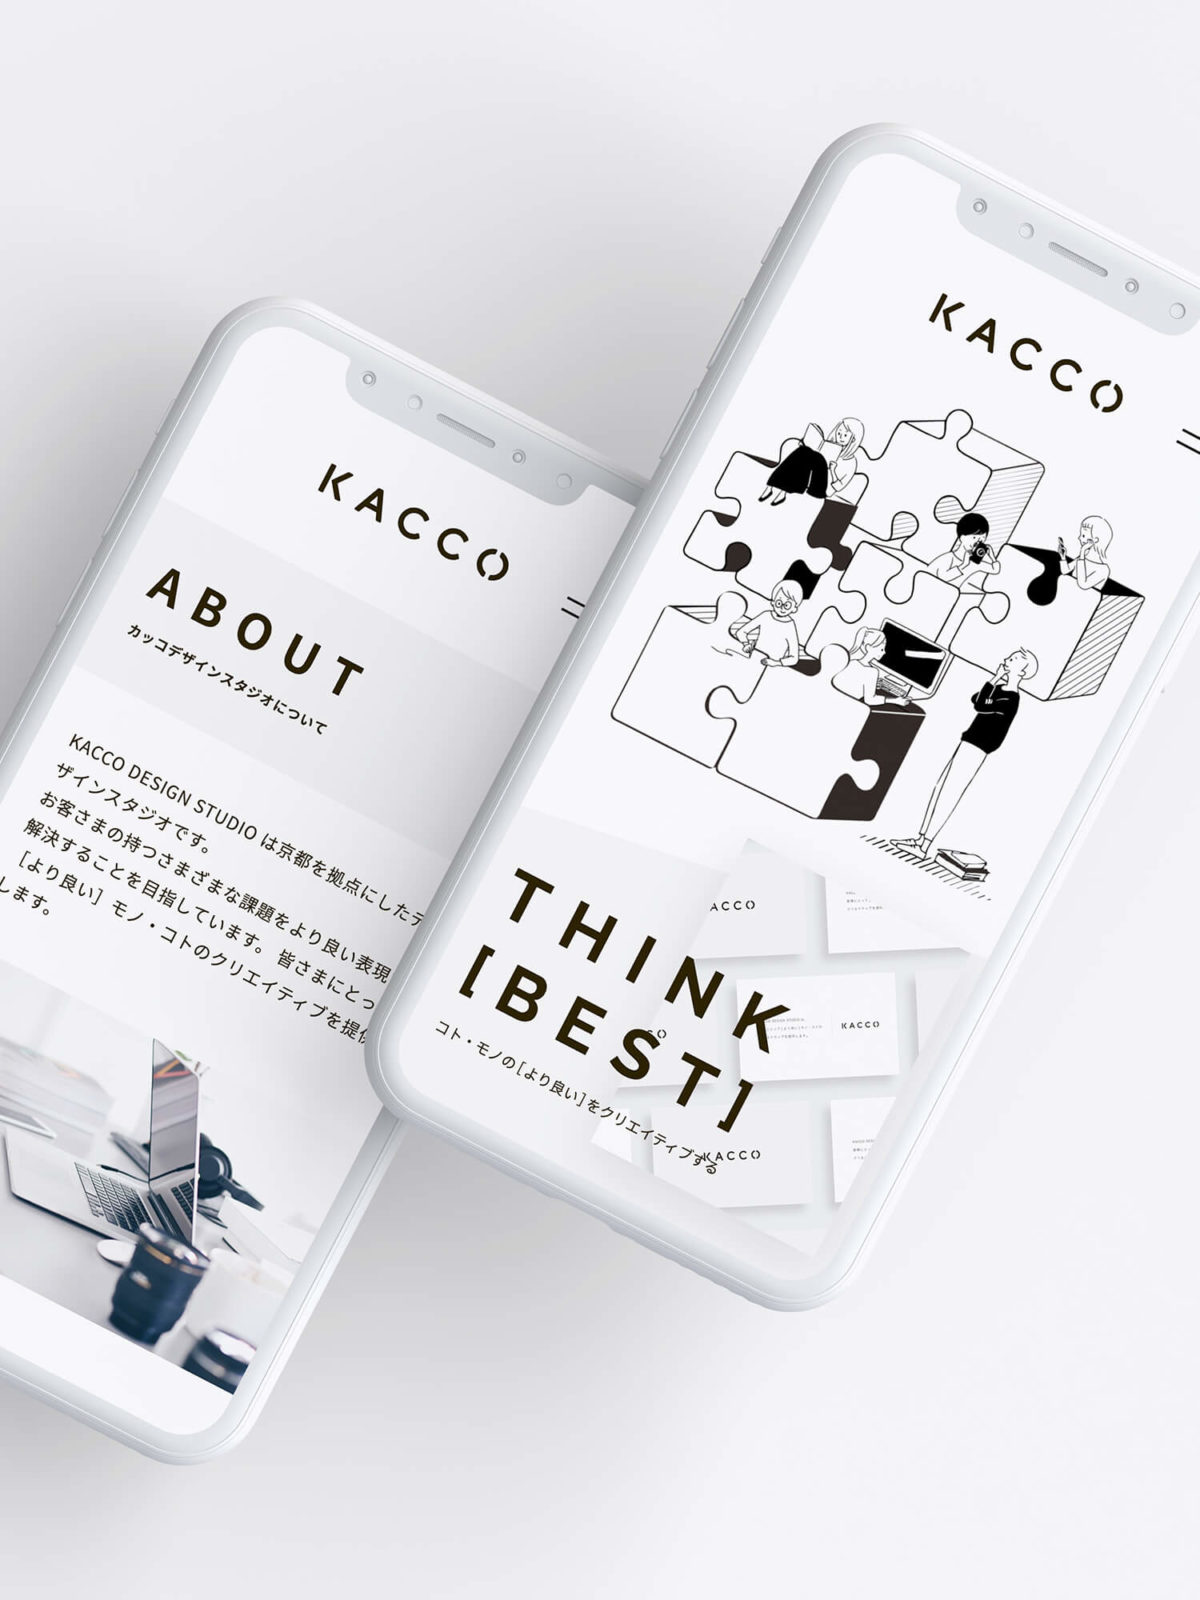 KACCO DESIGN STUDIO